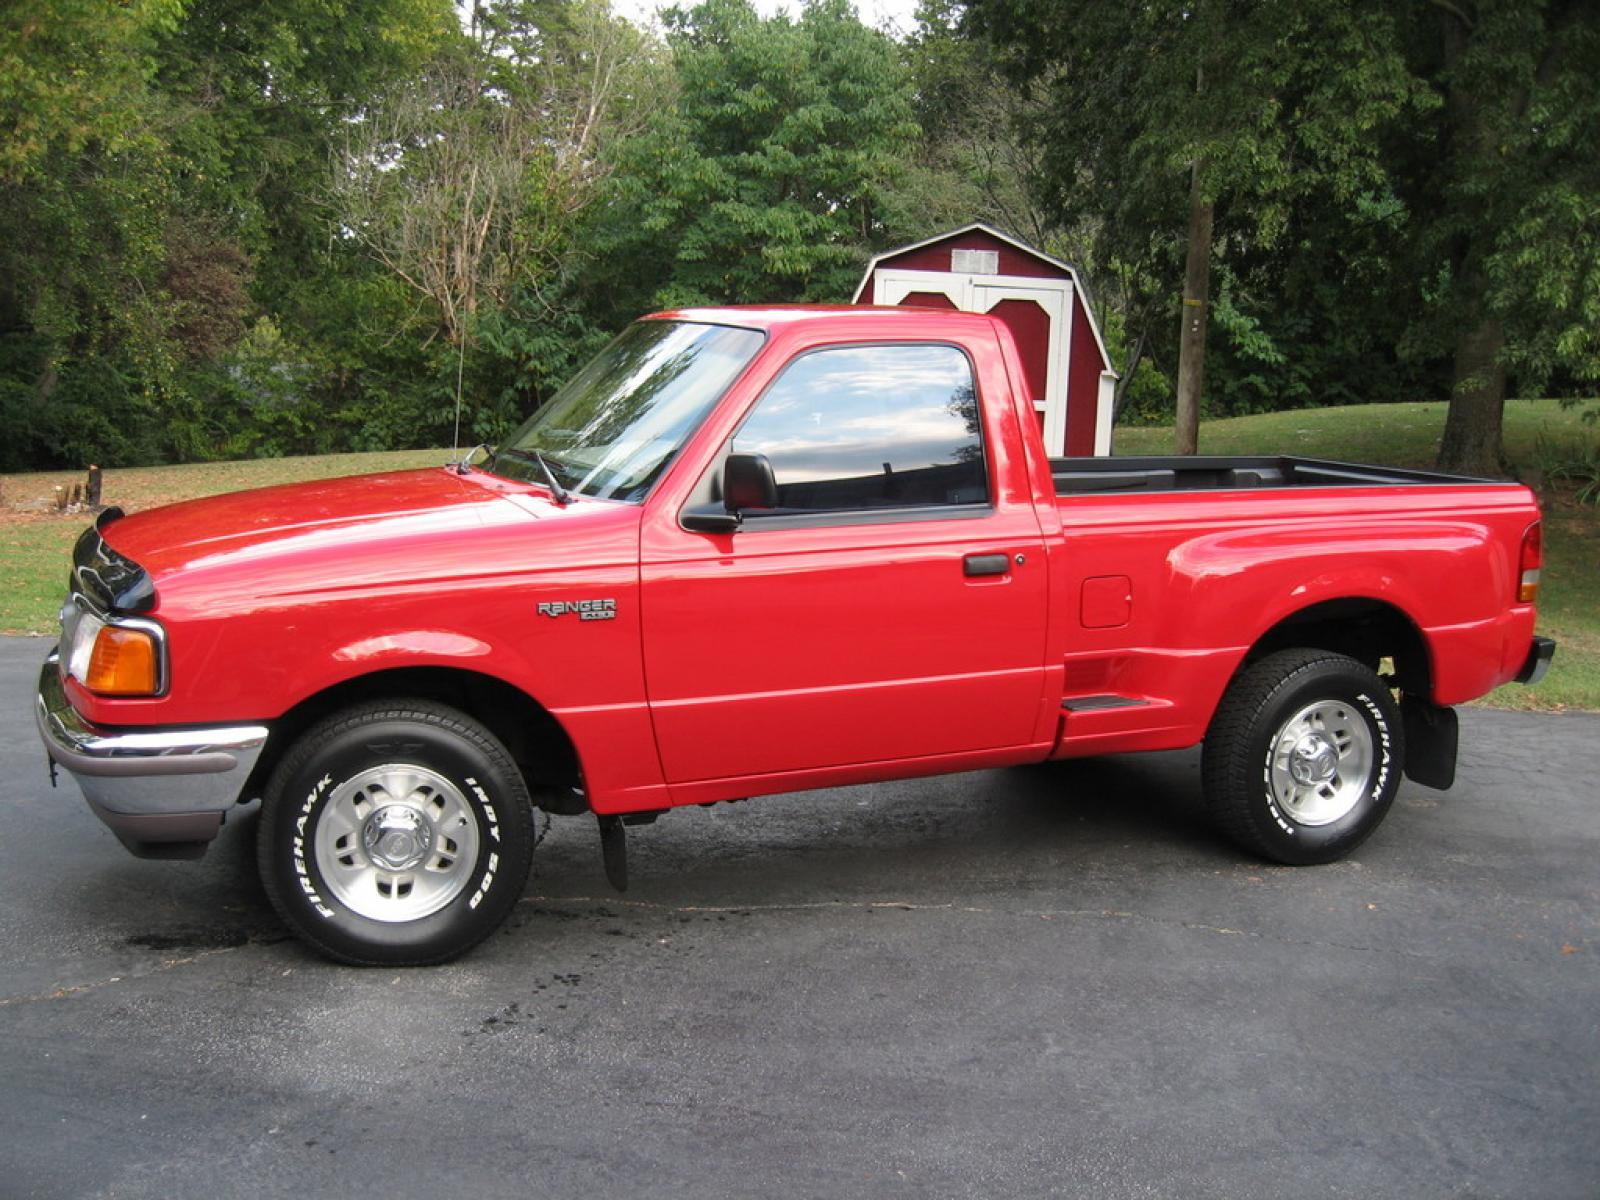 800 1024 1280 1600 origin 1997 Ford Ranger ...